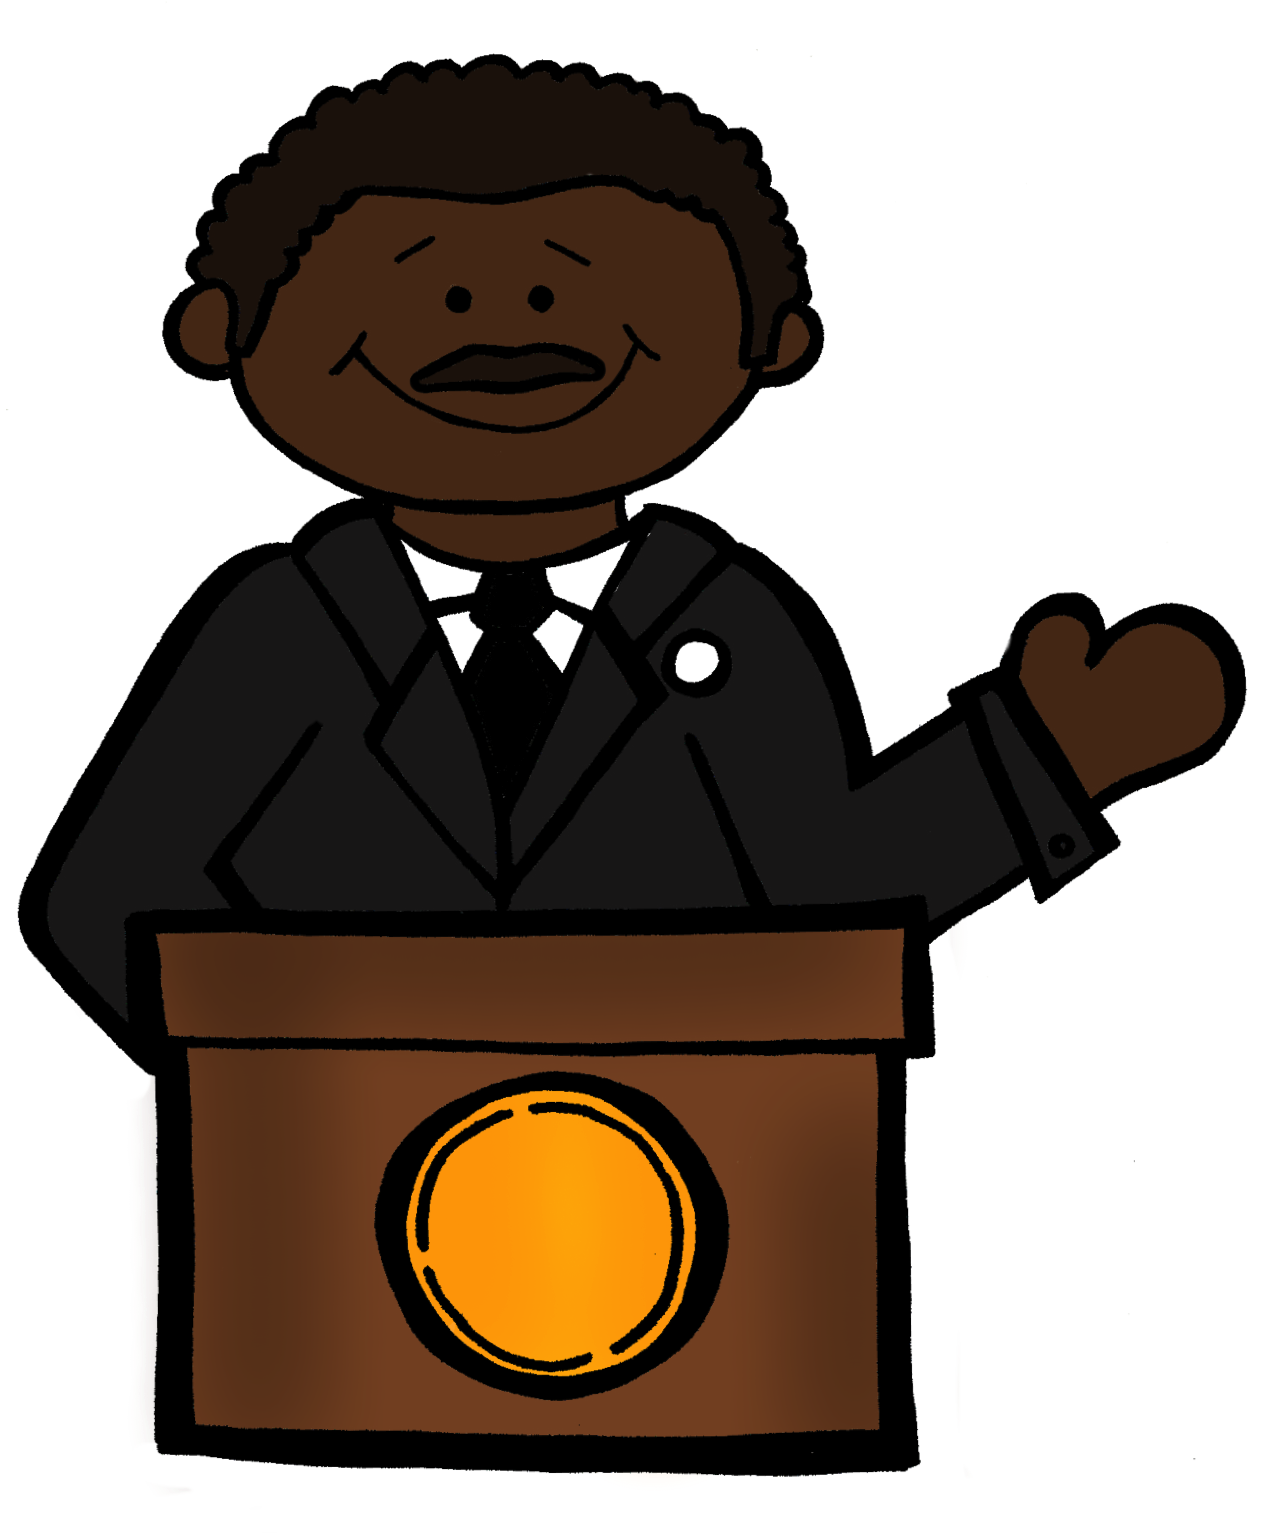 Mlk Clipart - Clipart Library-Mlk Clipart - Clipart library-17